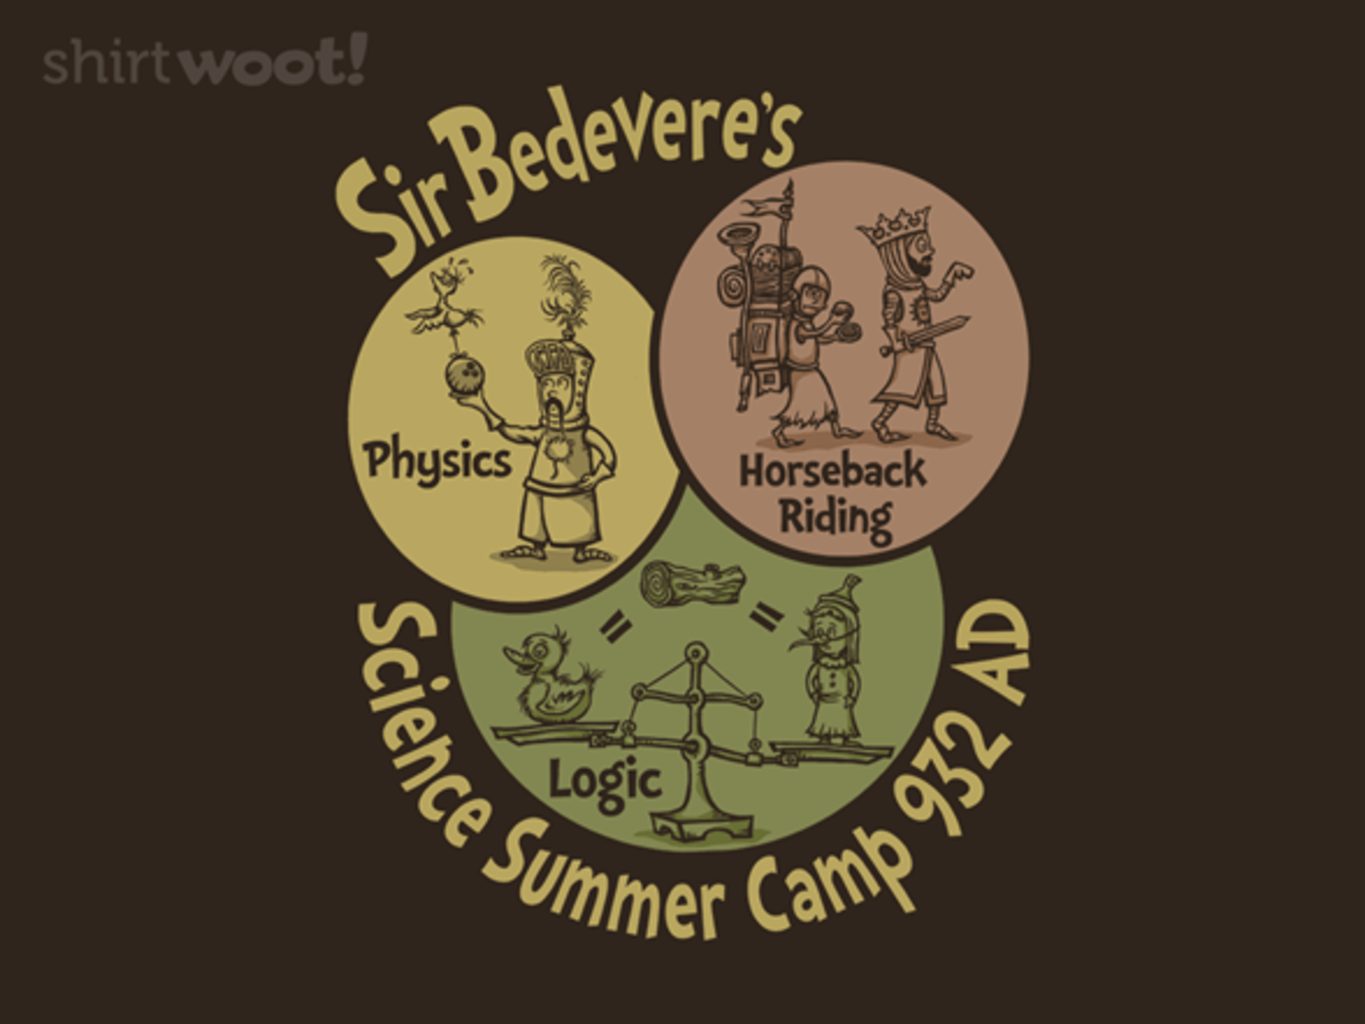 Woot!: Sir Bedevere's Science Camp